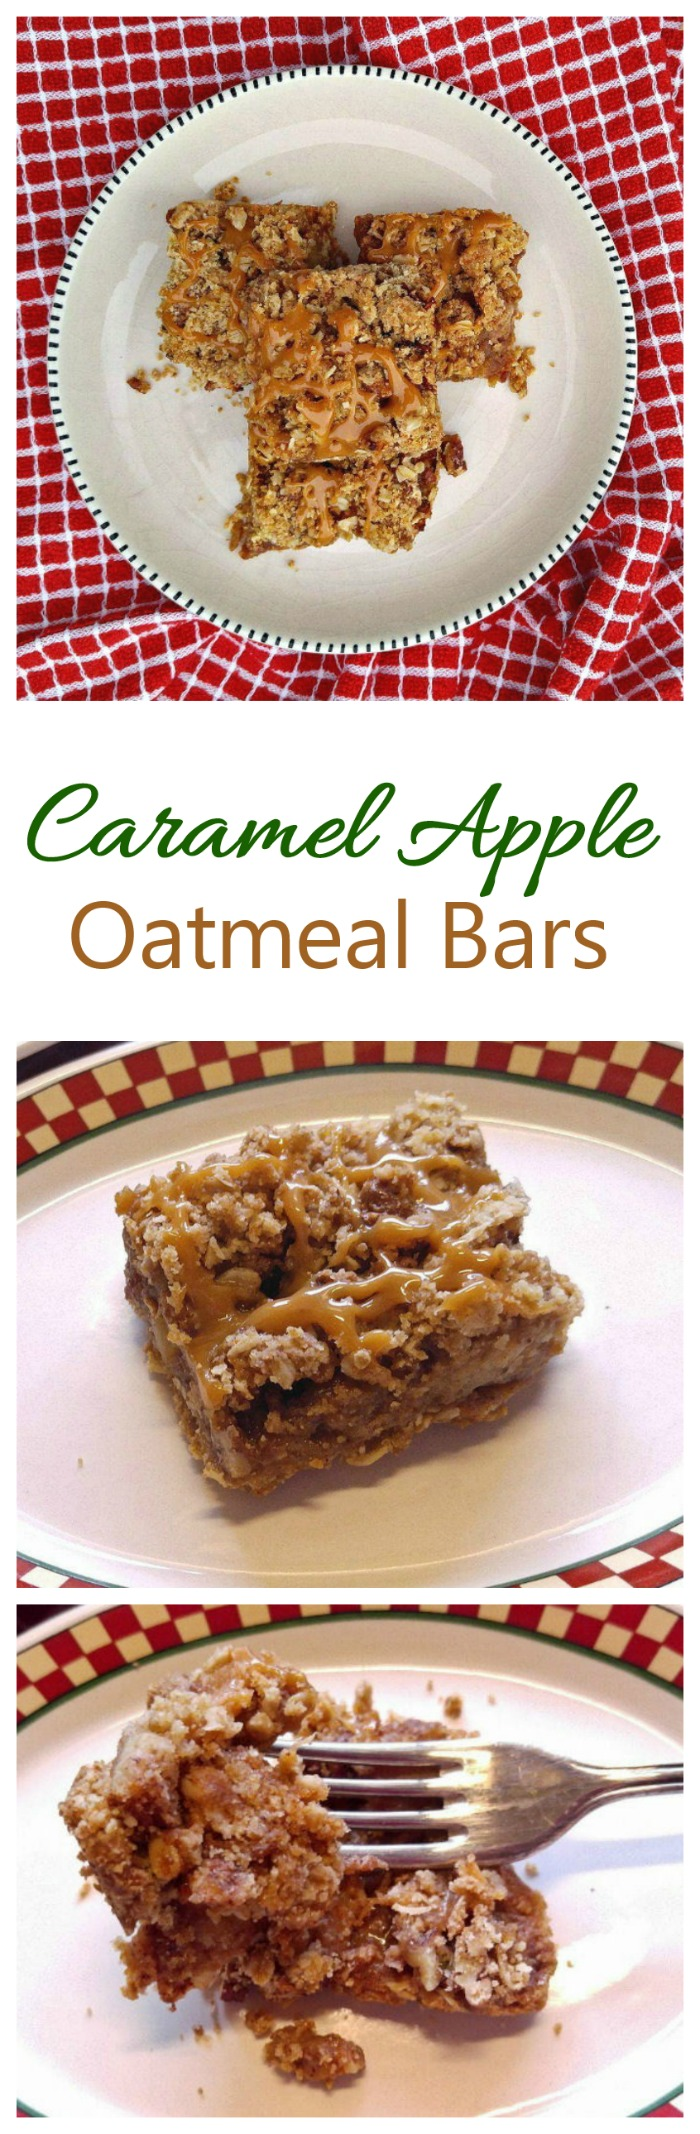 These caramel apple bars have a spiced apple center and crunchy sugar topping. #caramelapple #oatmeal bars